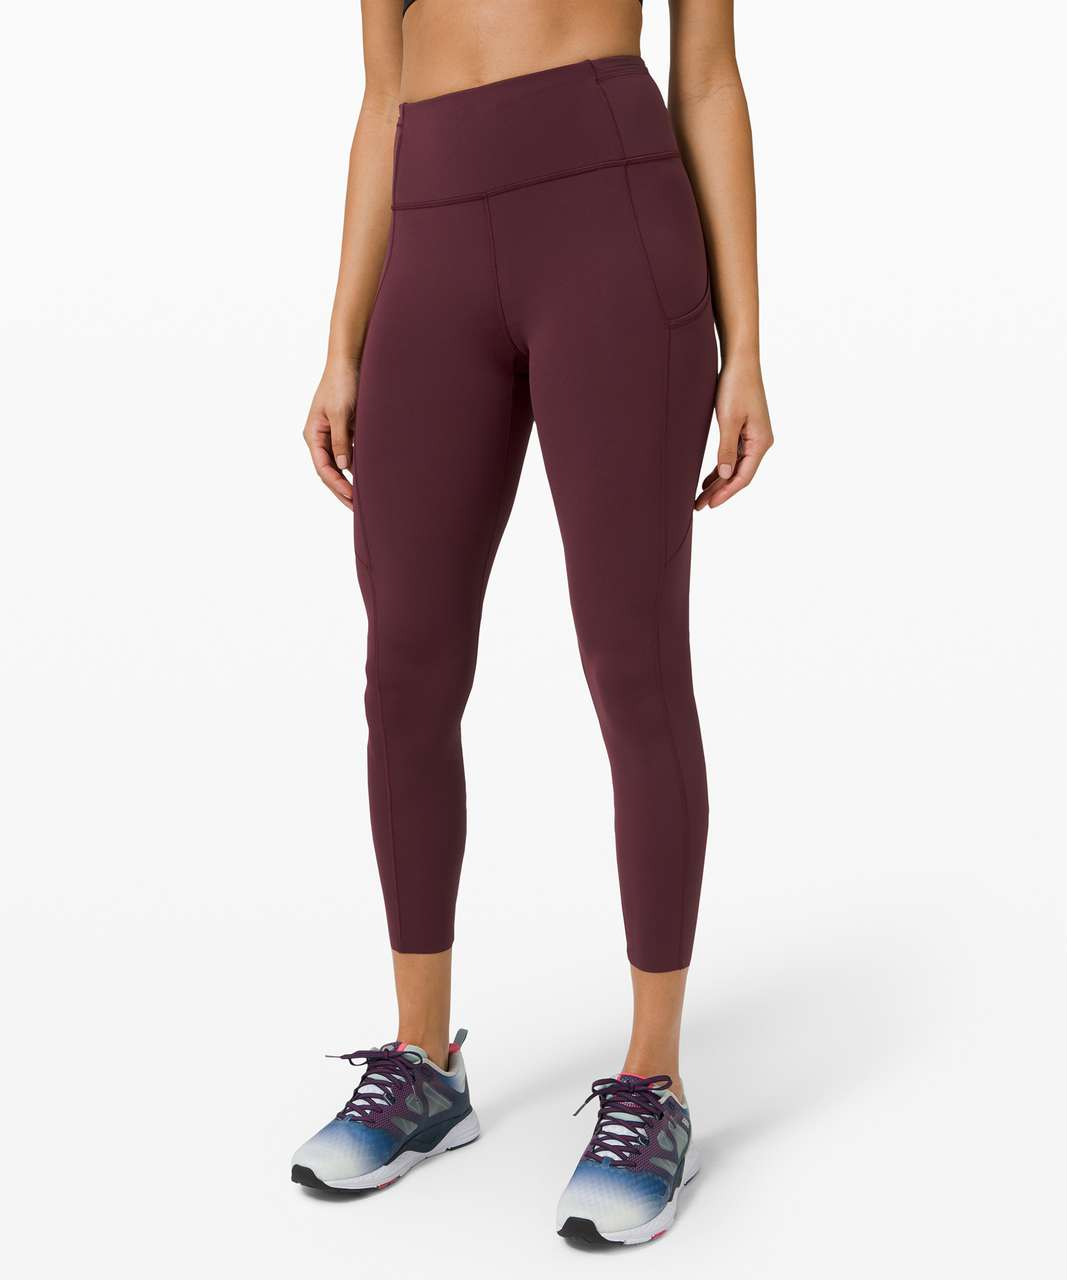 "Lululemon Fast and Free Tight II 25"" *Non-Reflective Nulux - Cassis"